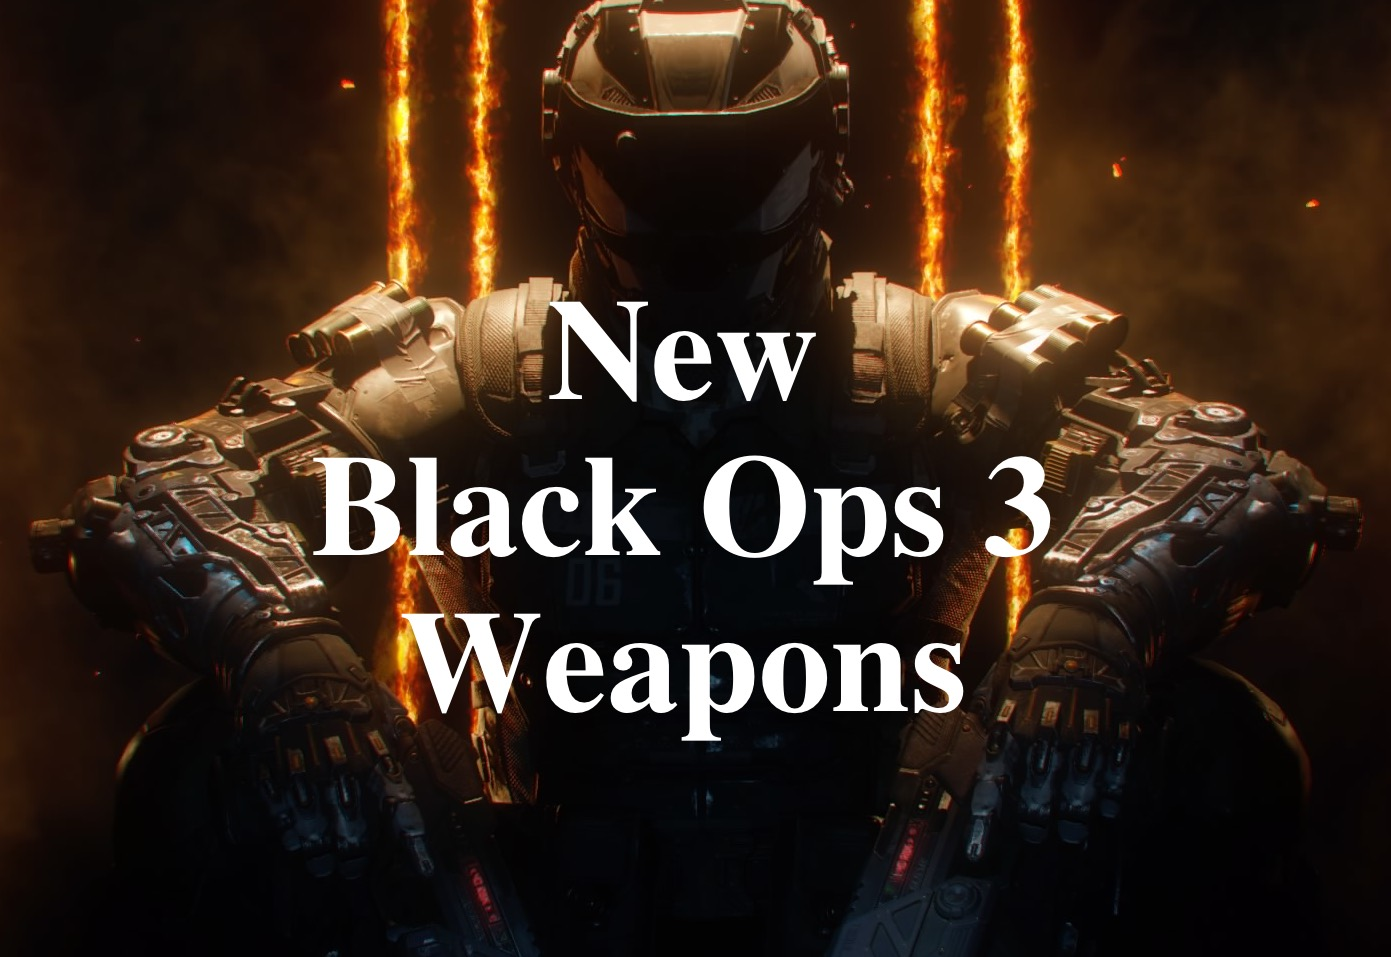 Here is what we know about the new Black Ops 3 Weapons.